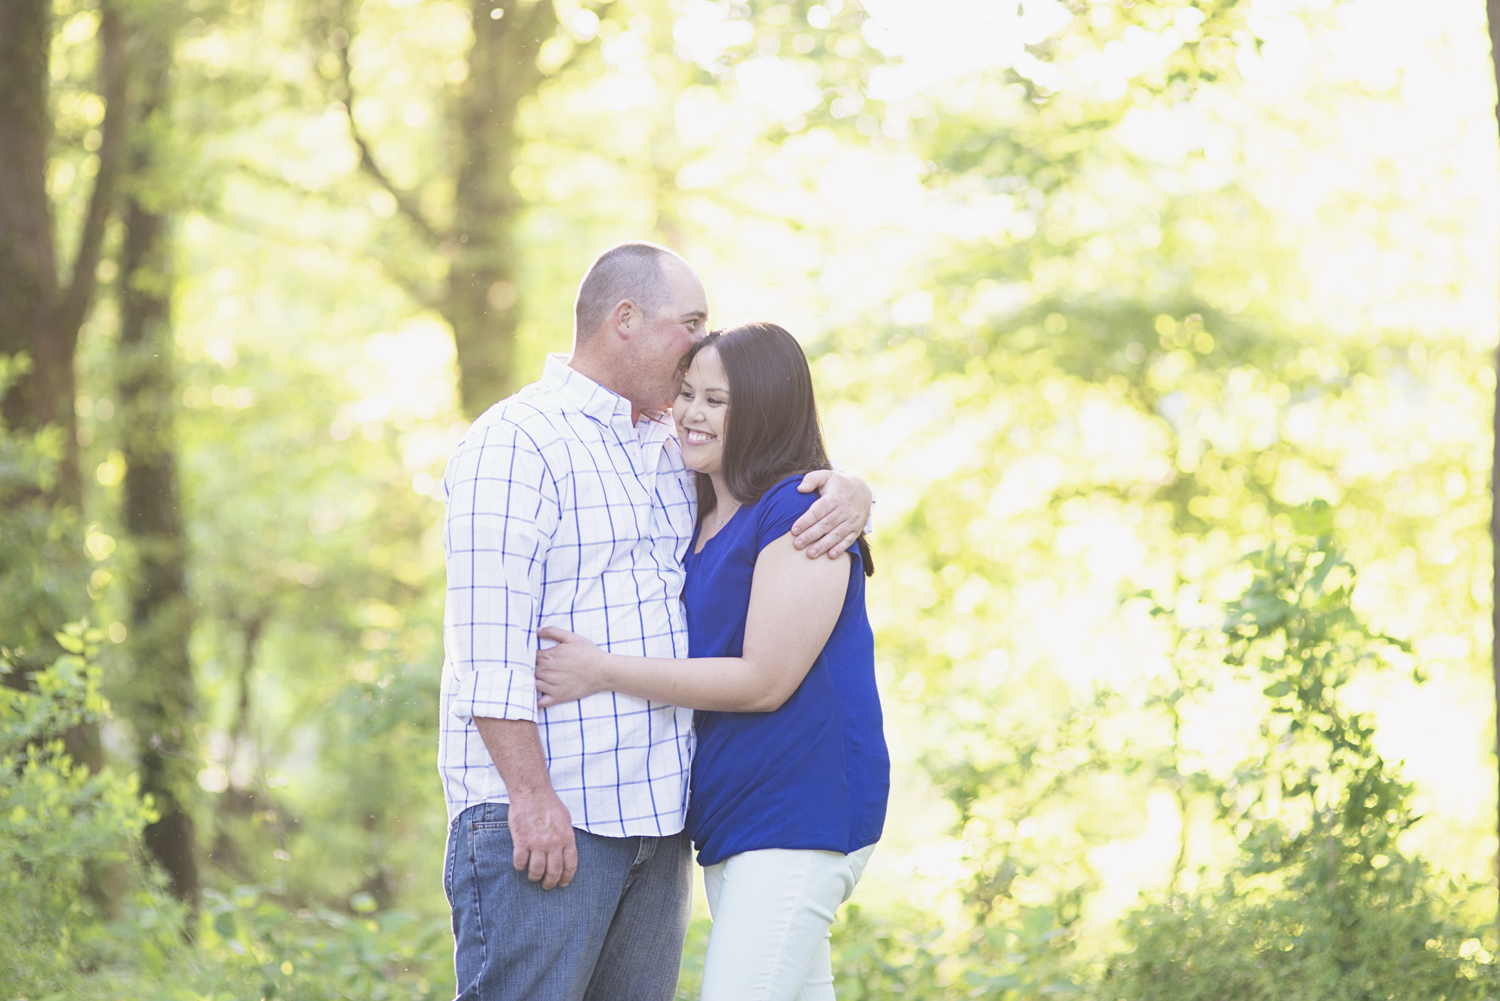 Windsor Castle Park Engagement Session in Smithfield, Virginia | Plaid blue outfit